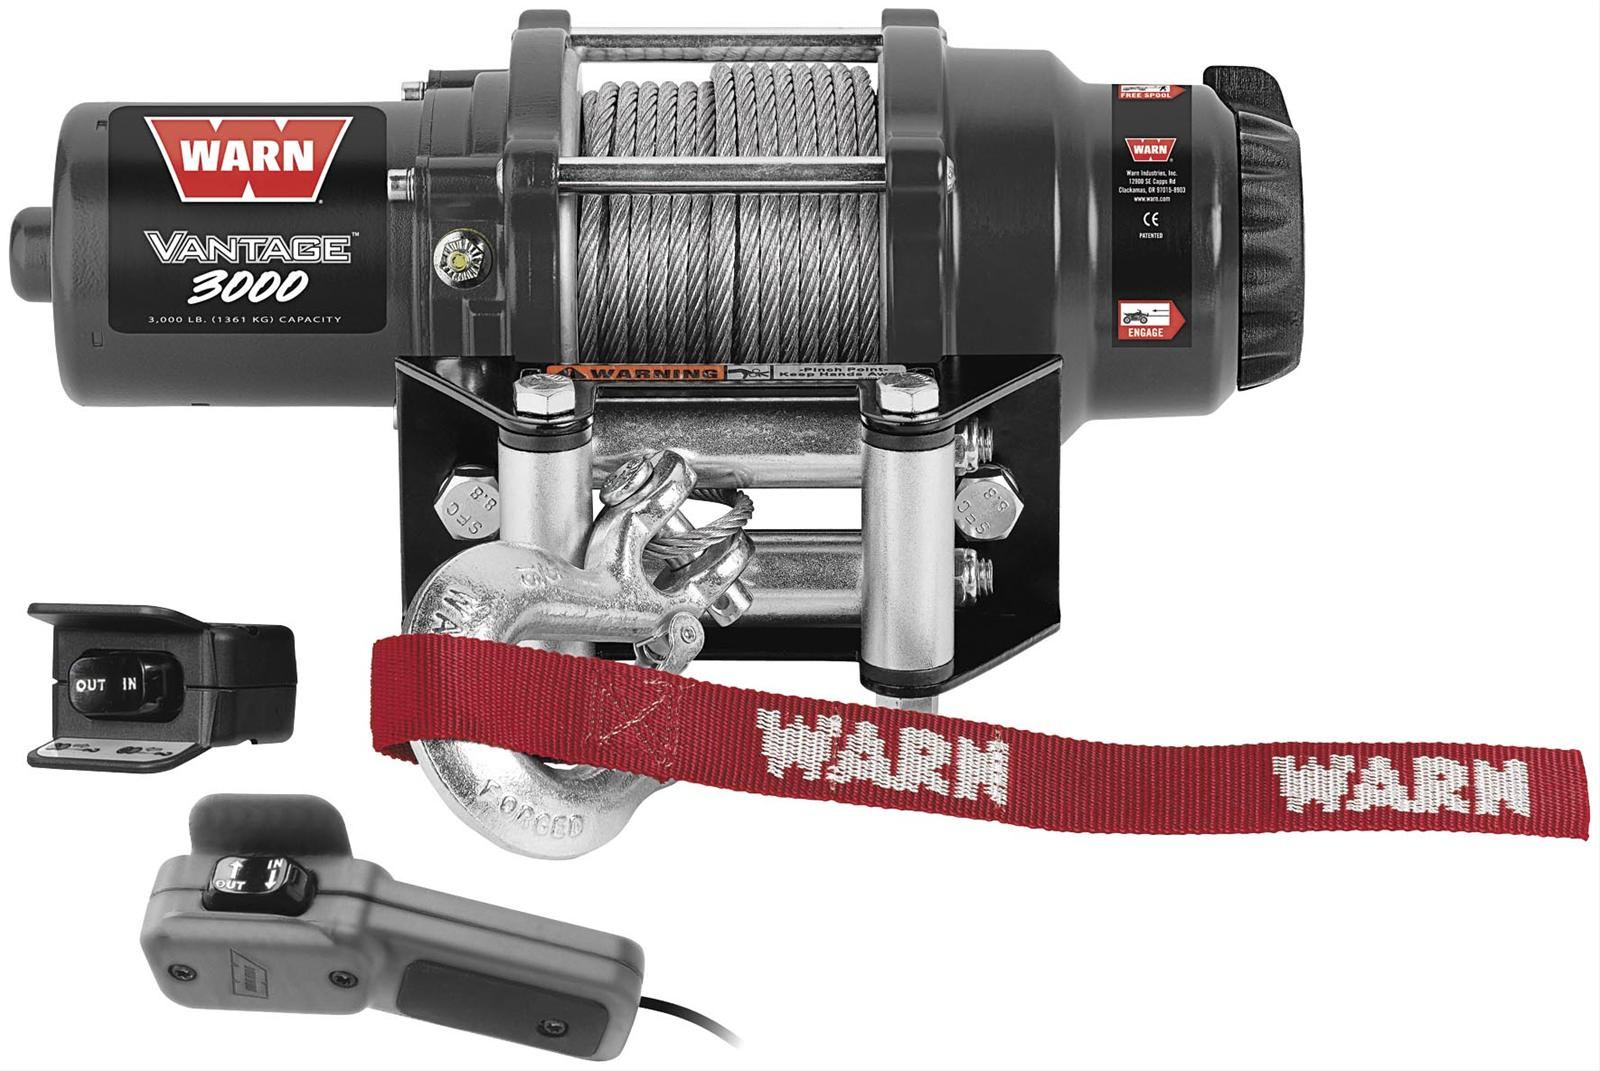 wrn 89030_xl xl 3000 warn winch parts diagram efcaviation com warn vantage 3000 wiring diagram at n-0.co